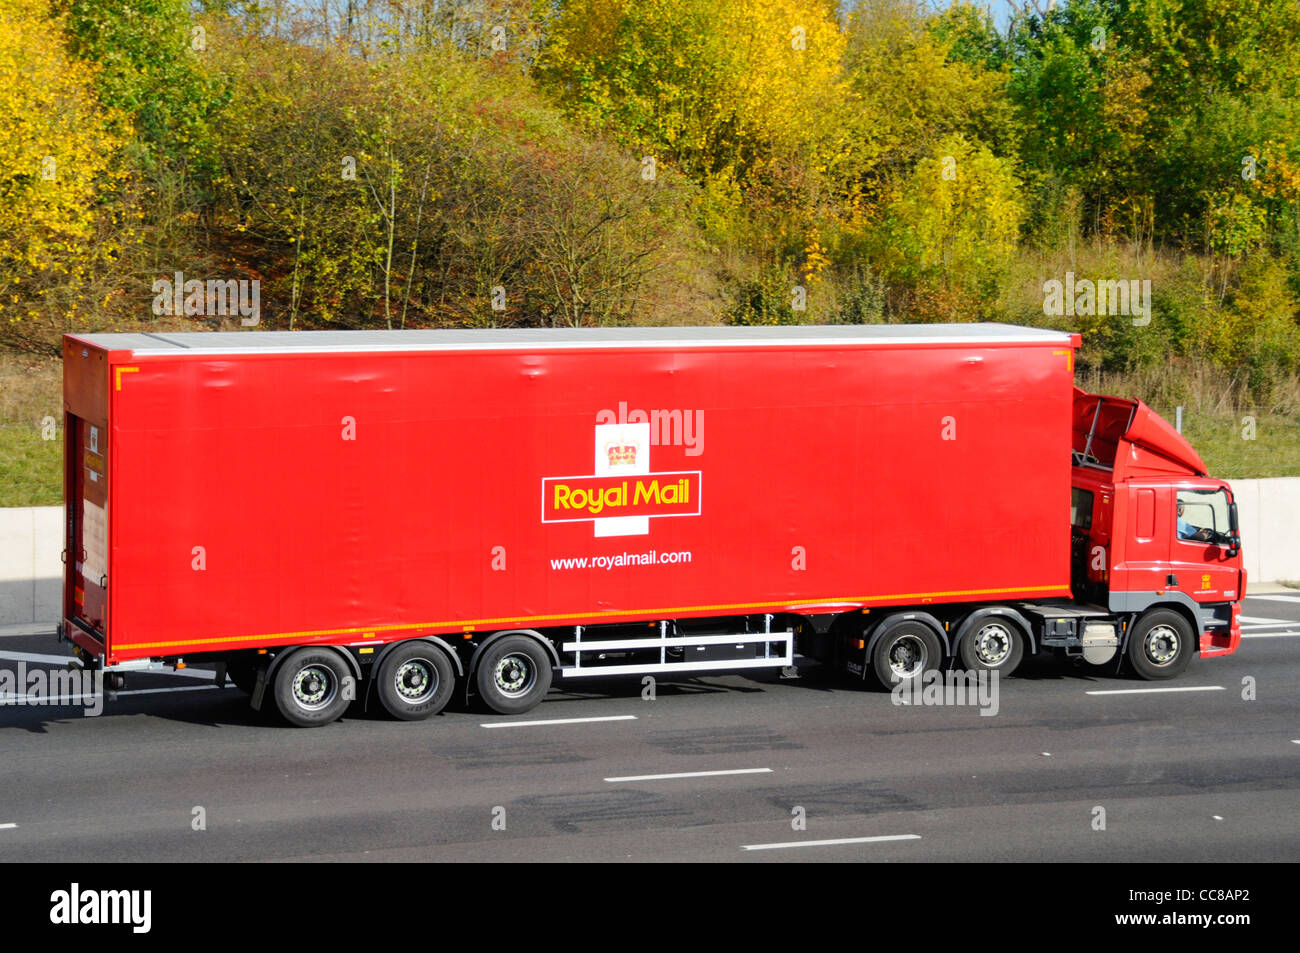 Side view of red Royal Mail logistics hgv distribution lorry truck juggernaut and articulated trailer driving along - Stock Image